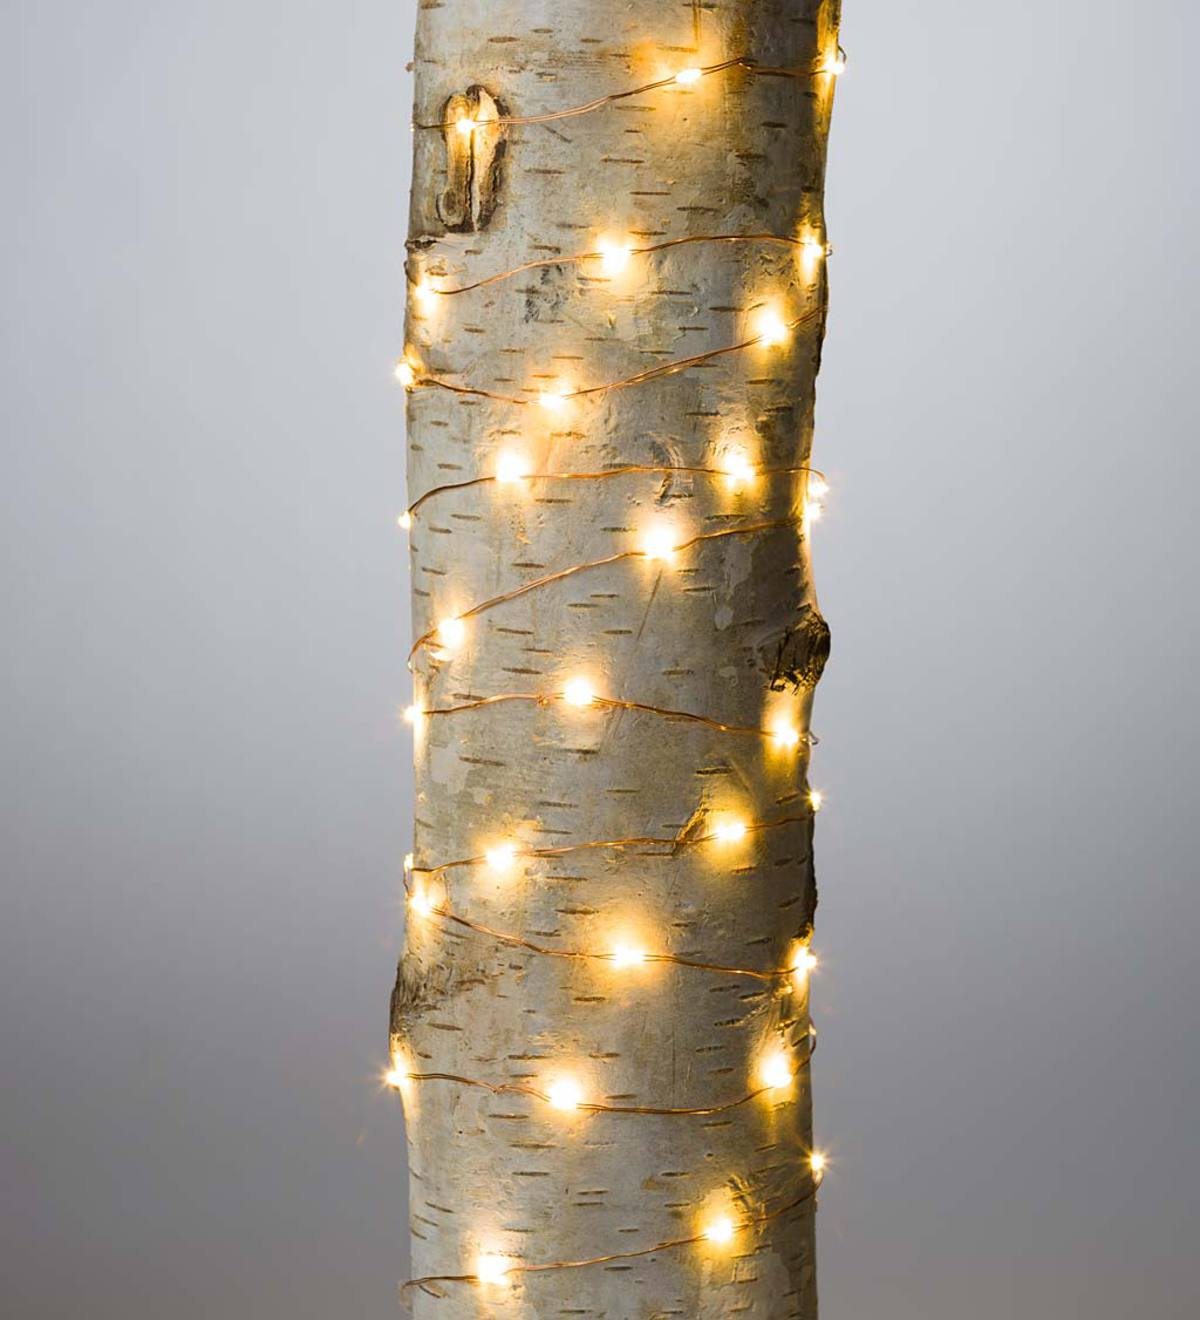 Firefly String Lights 240 Warm White Leds On Bendable Wire Electric 40